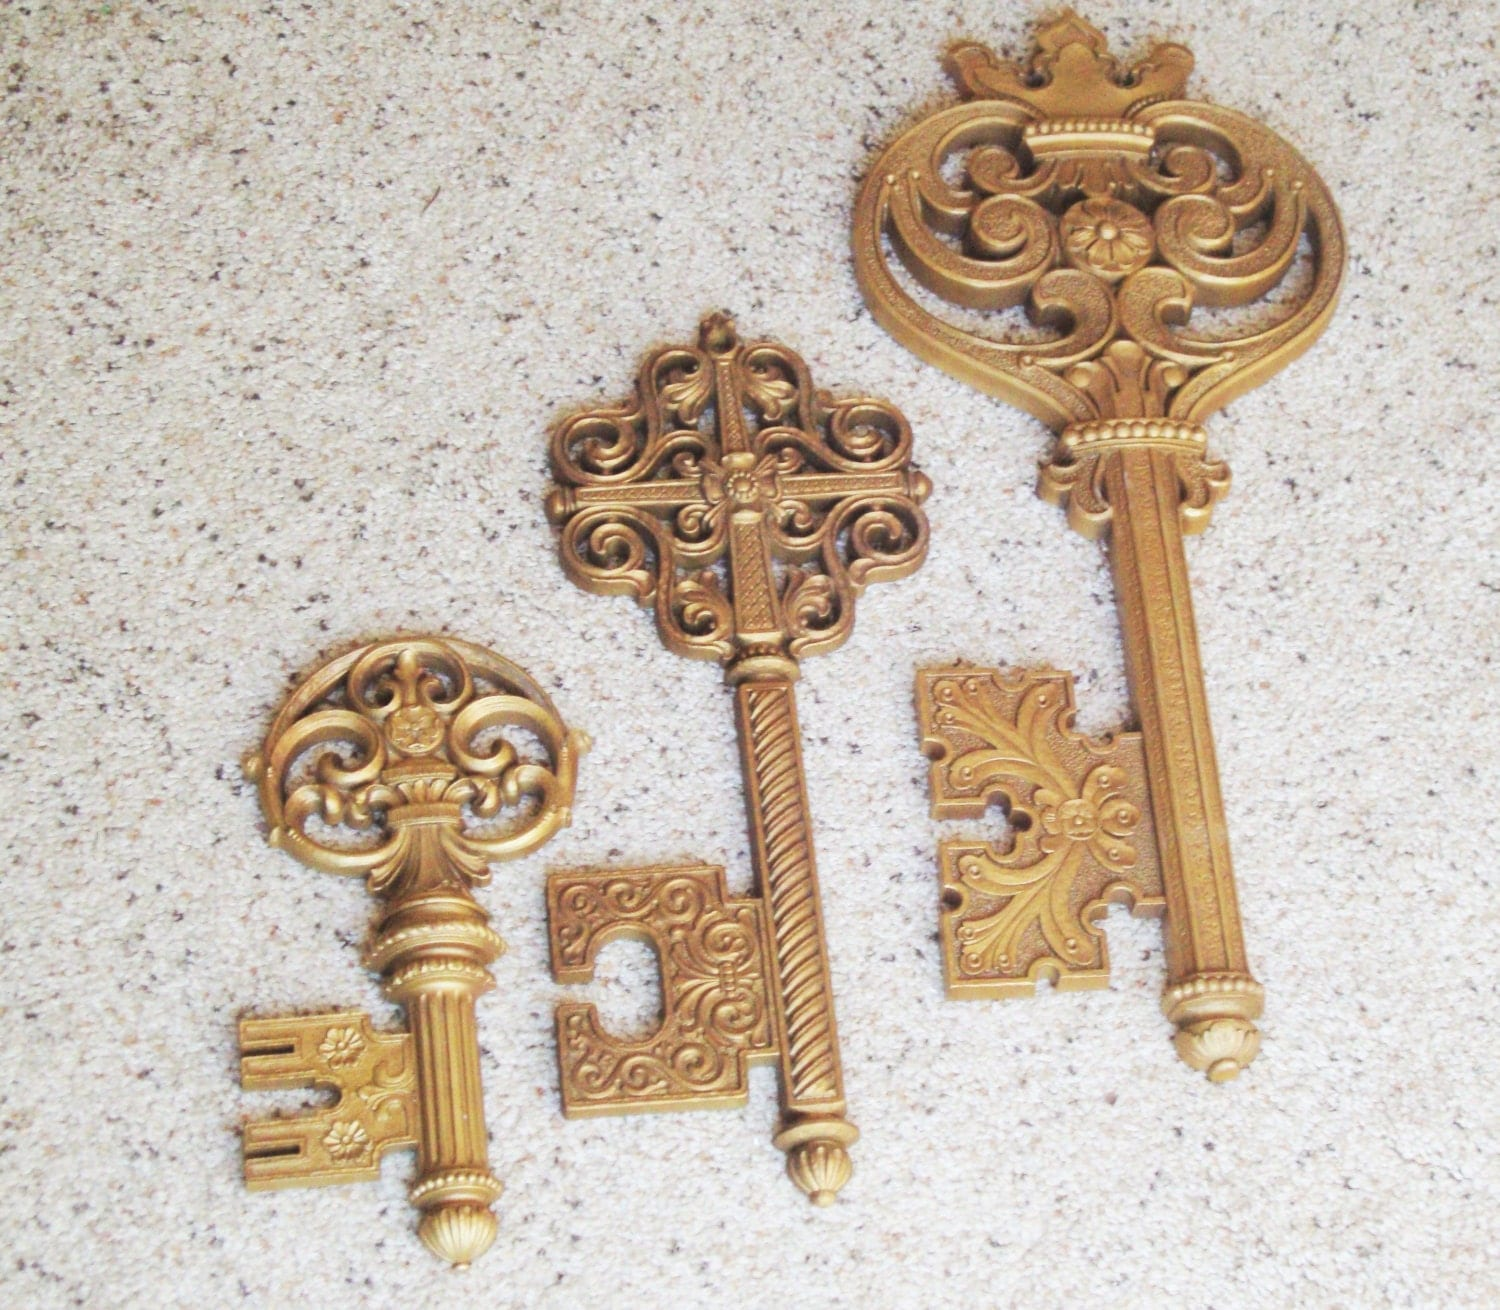 Wall Decor Keys : Key wall decor syroco large skeleton keys